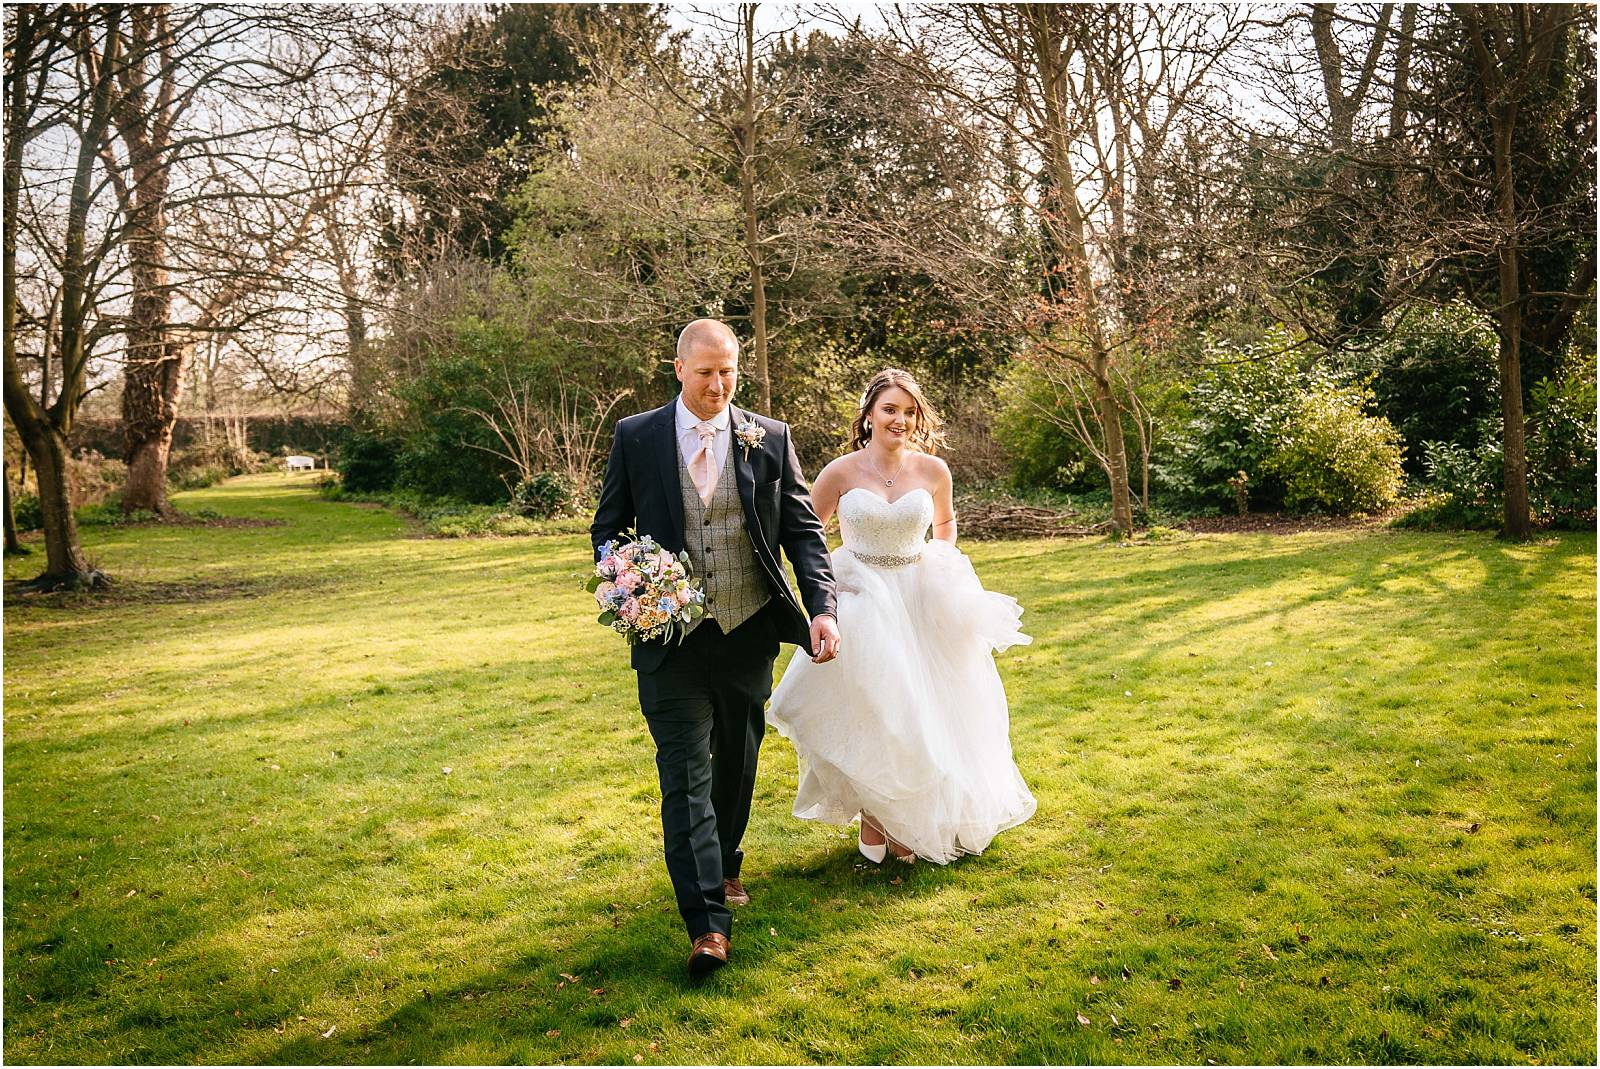 Morden Hall Wedding Photography – Claire & Dan's Spring Wedding